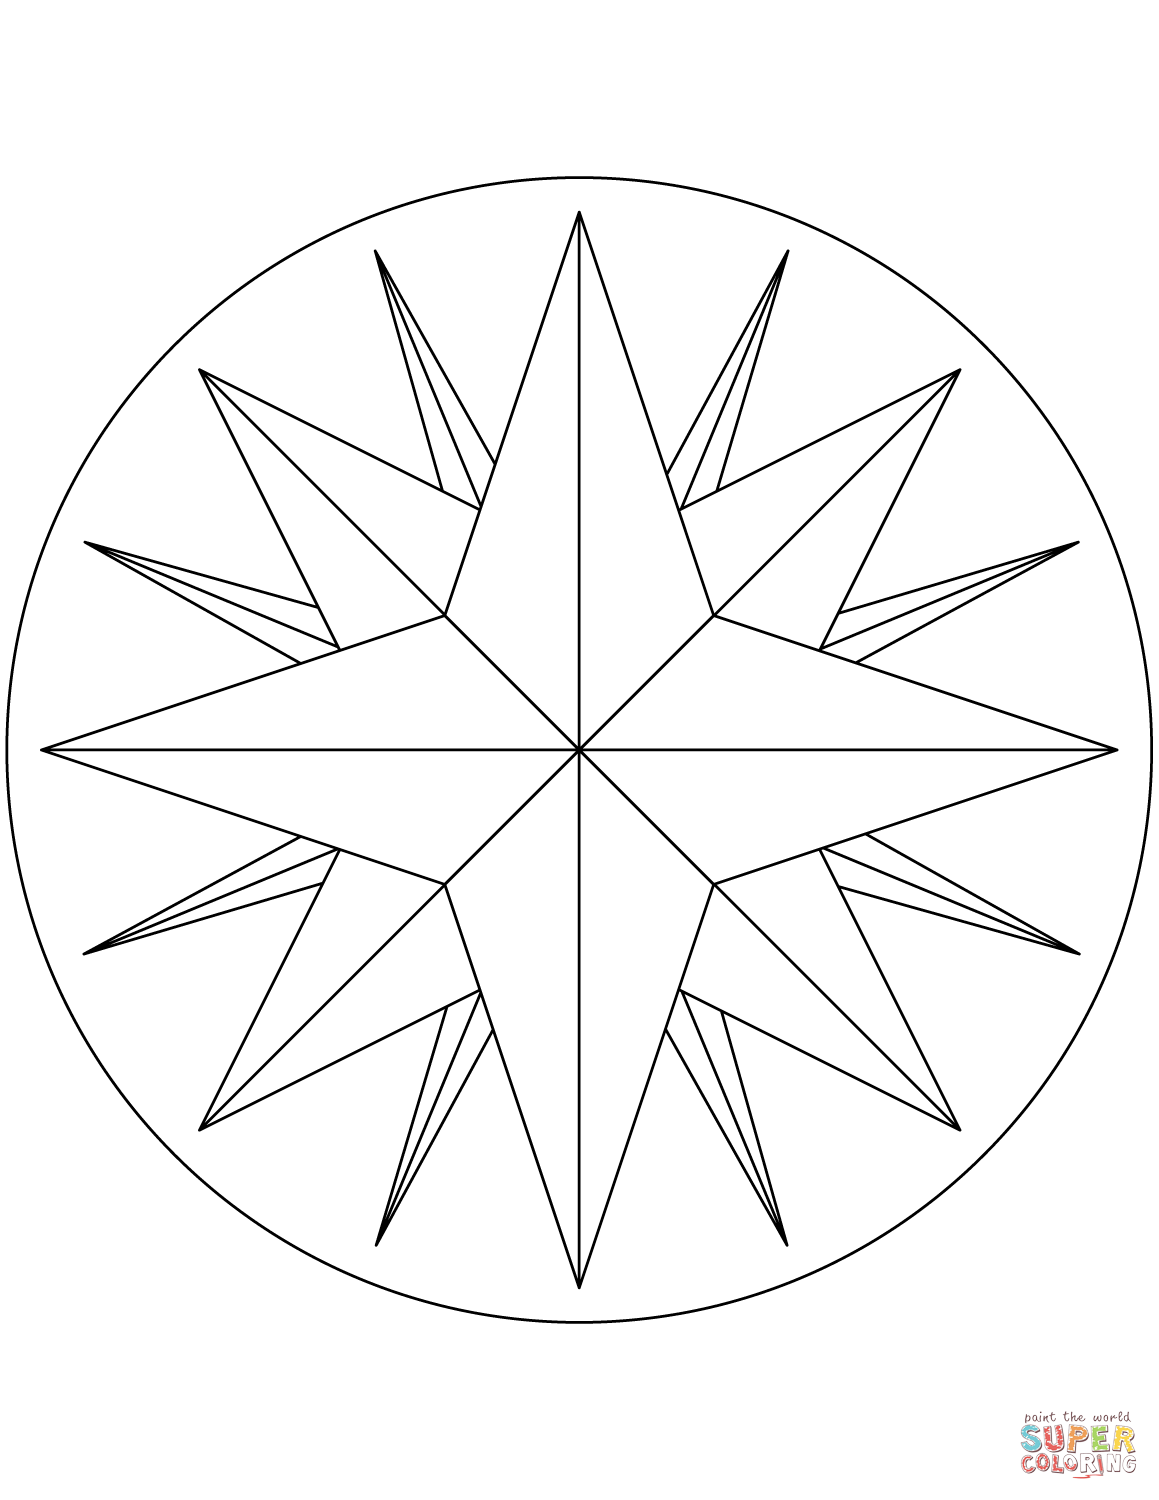 Compass Line Drawing At Getdrawings